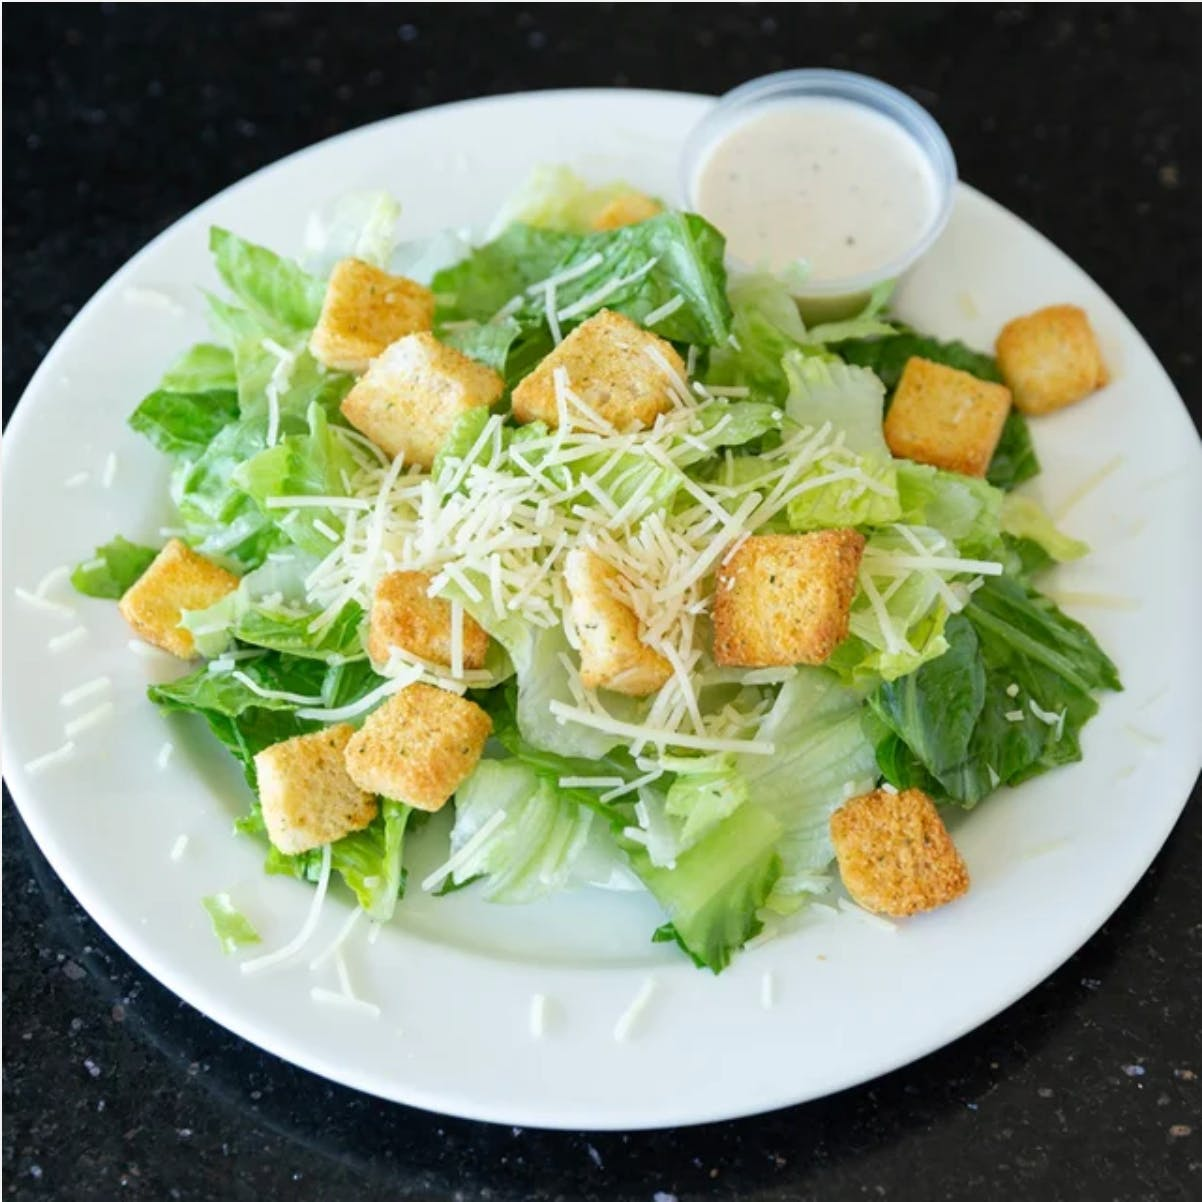 Caesar Salad from Aroma Pizza & Pasta in Lake Forest, CA